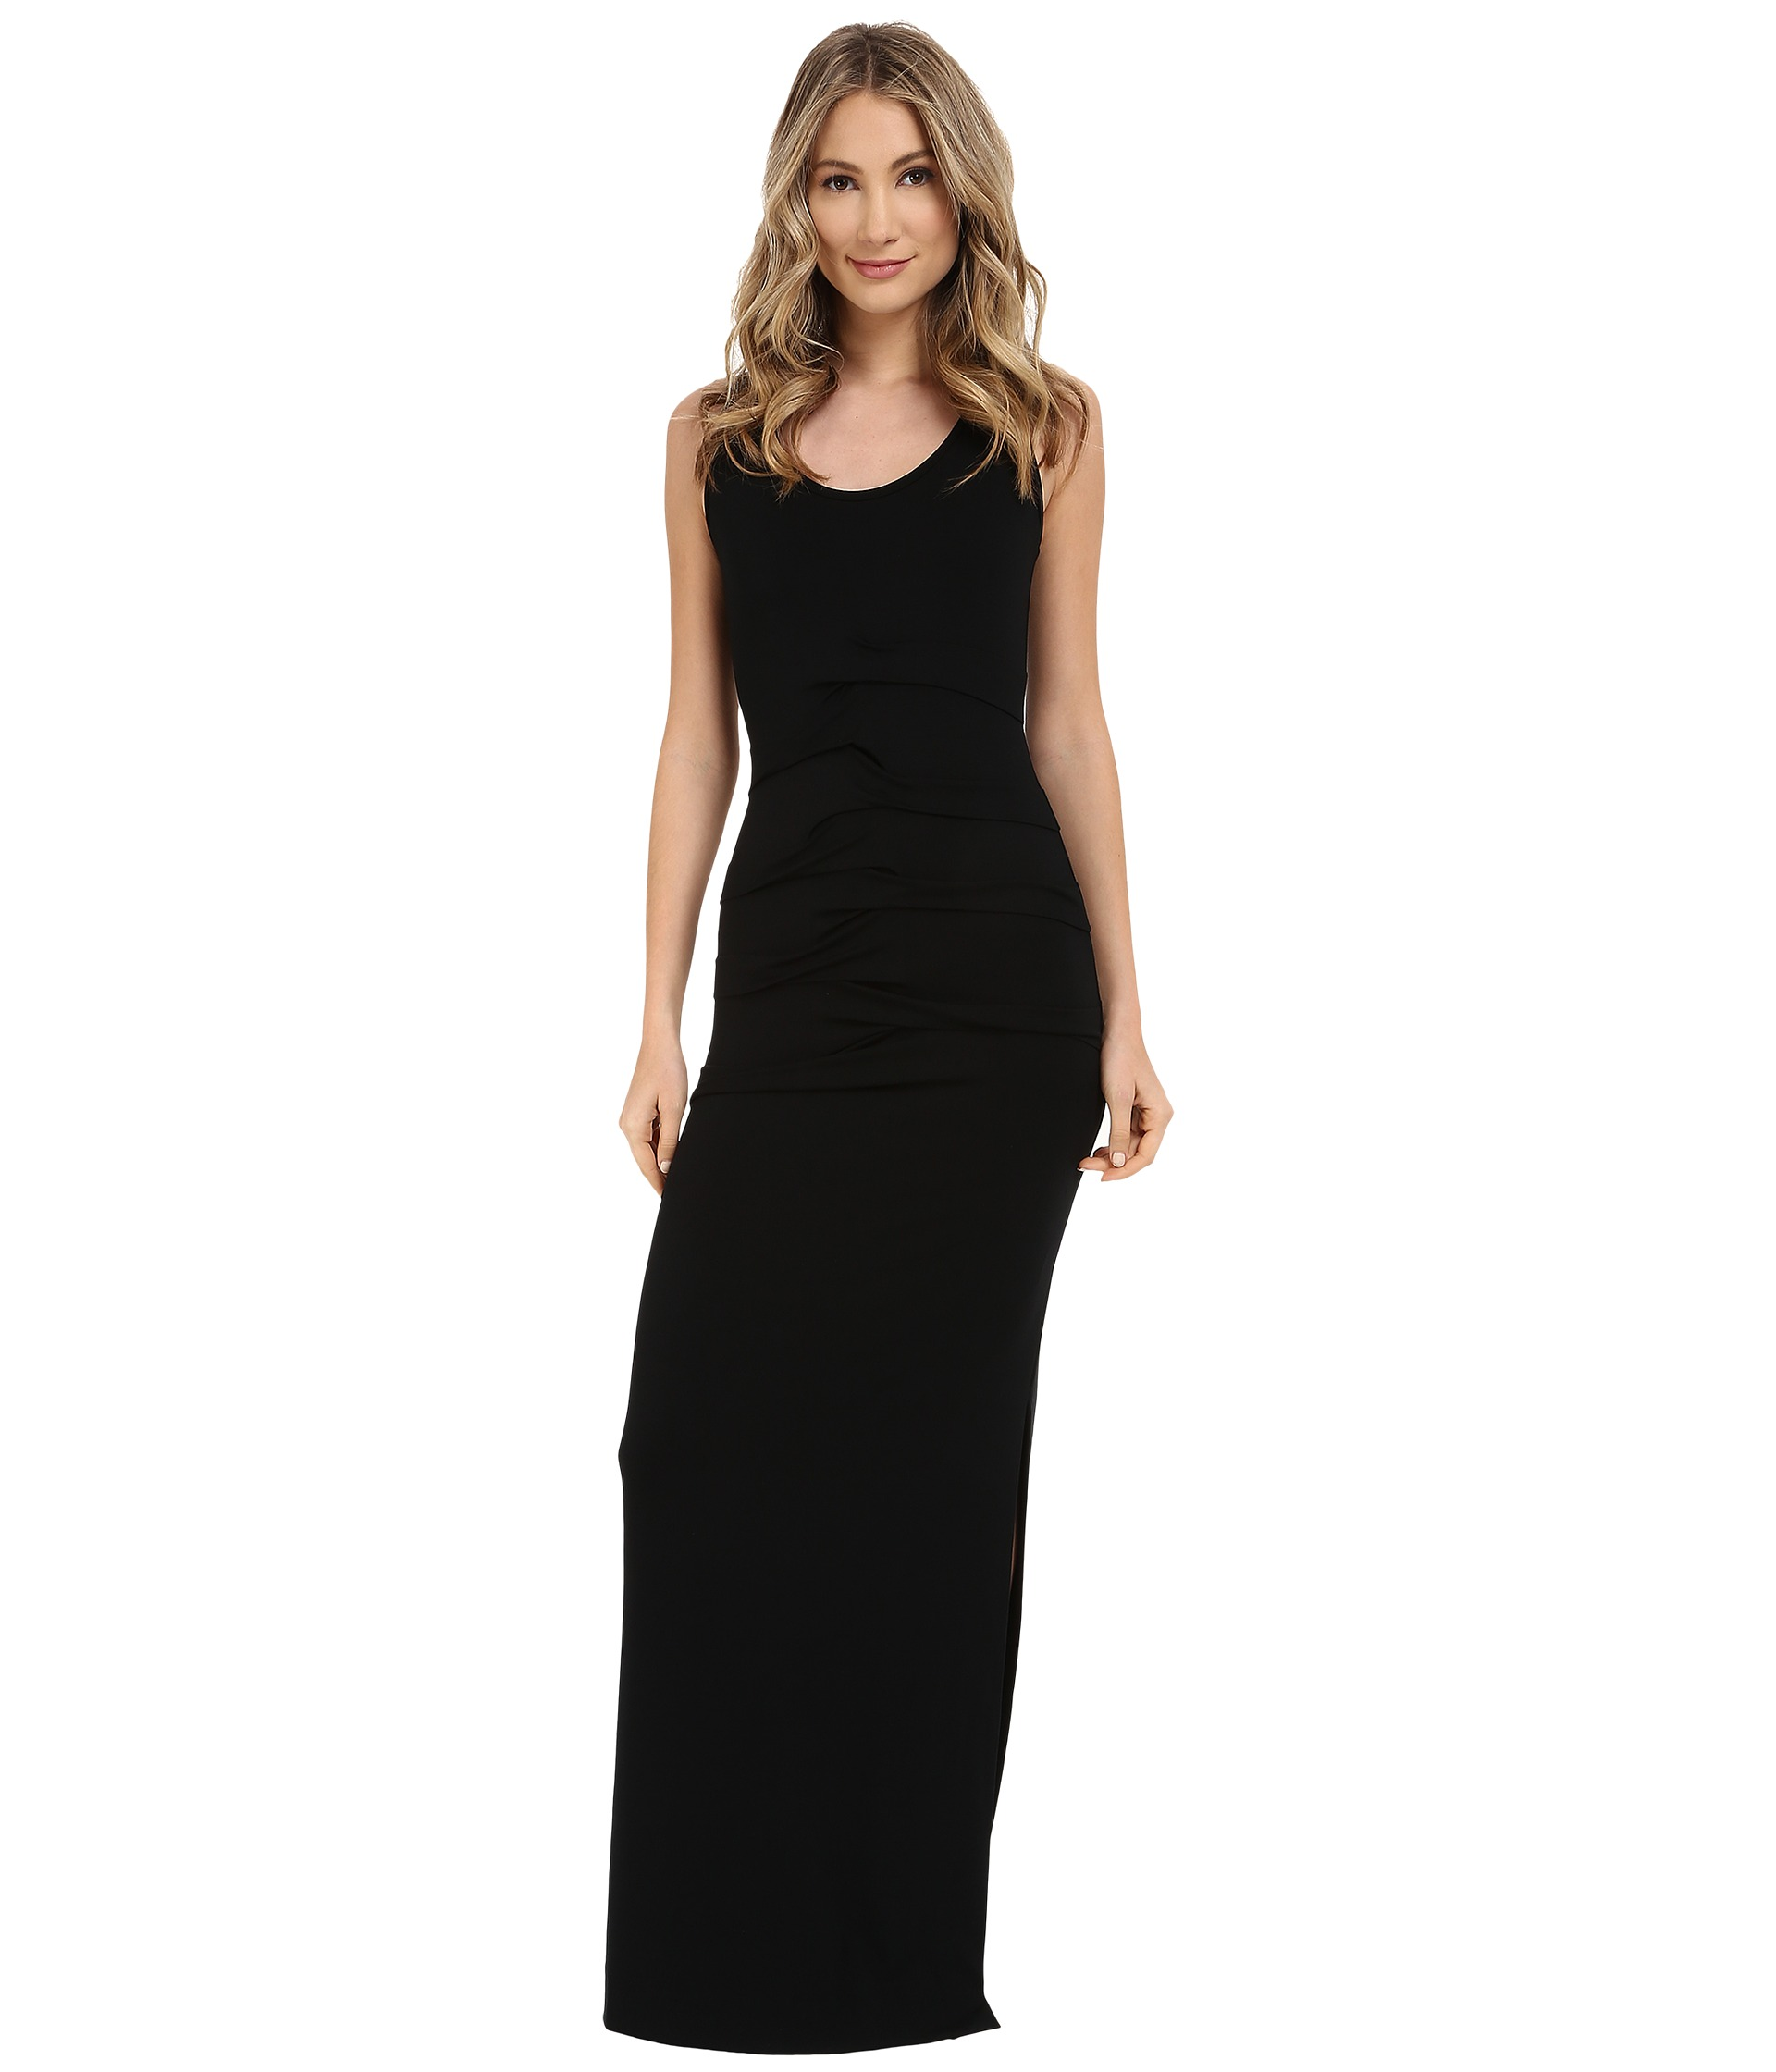 Nicole Miller Simple Maxi Dress Capri, Clothing, Women | Shipped ...